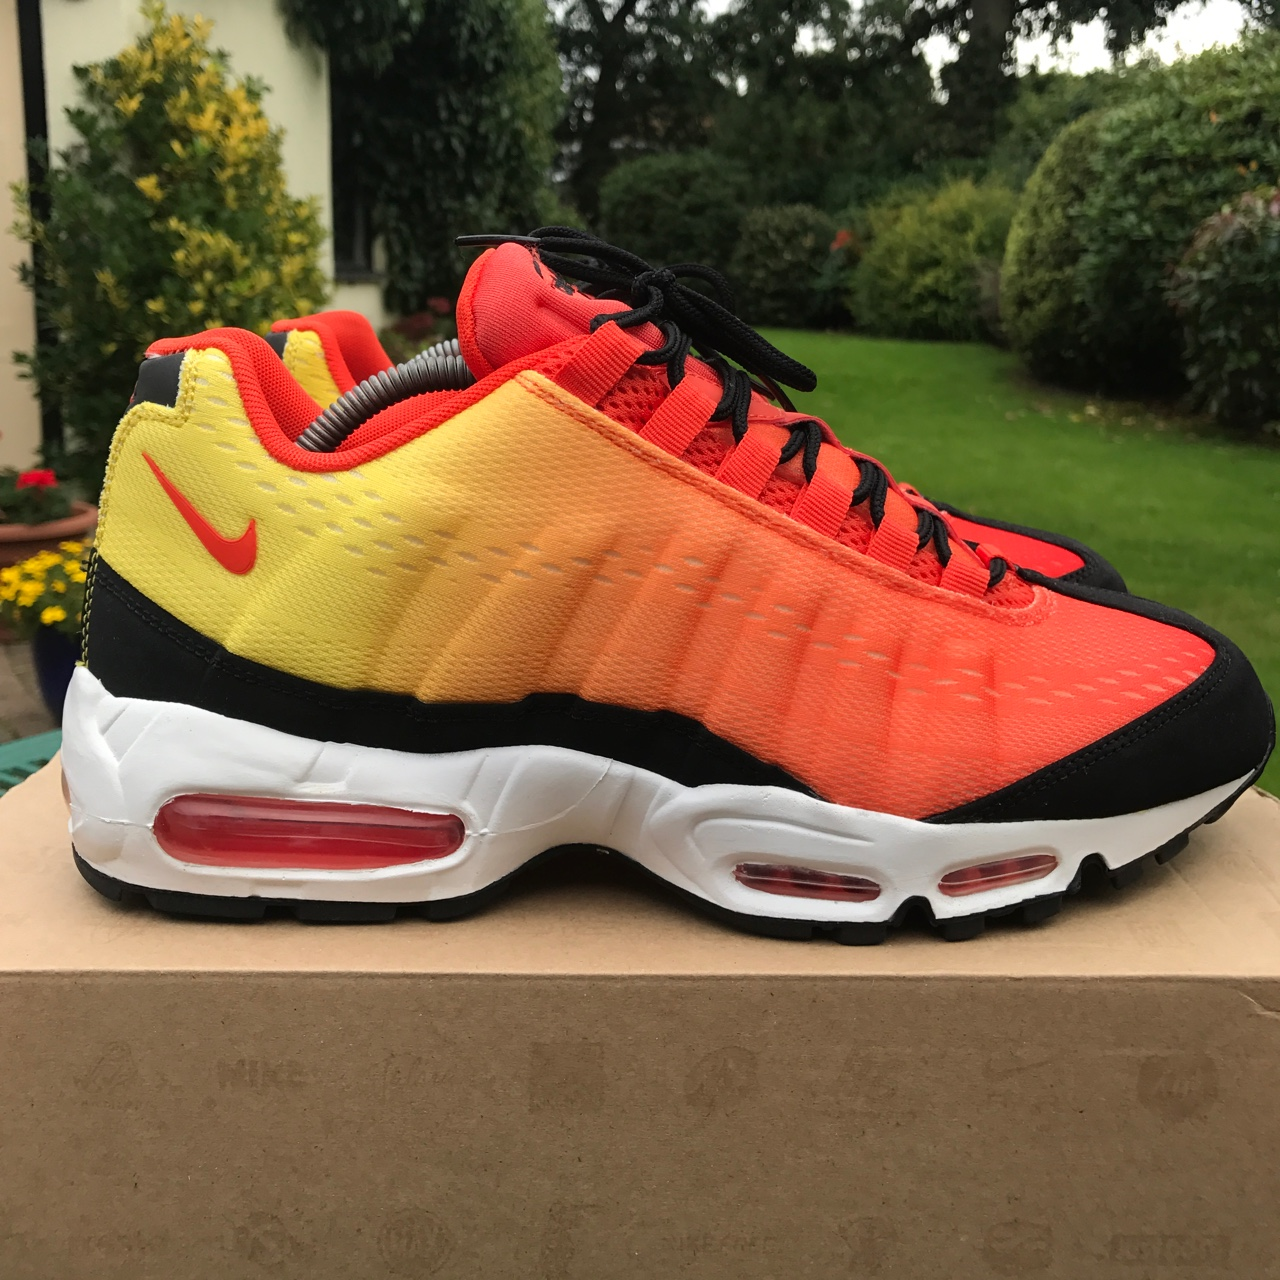 Nike Air Max 95 Sunset trainers - 9/10